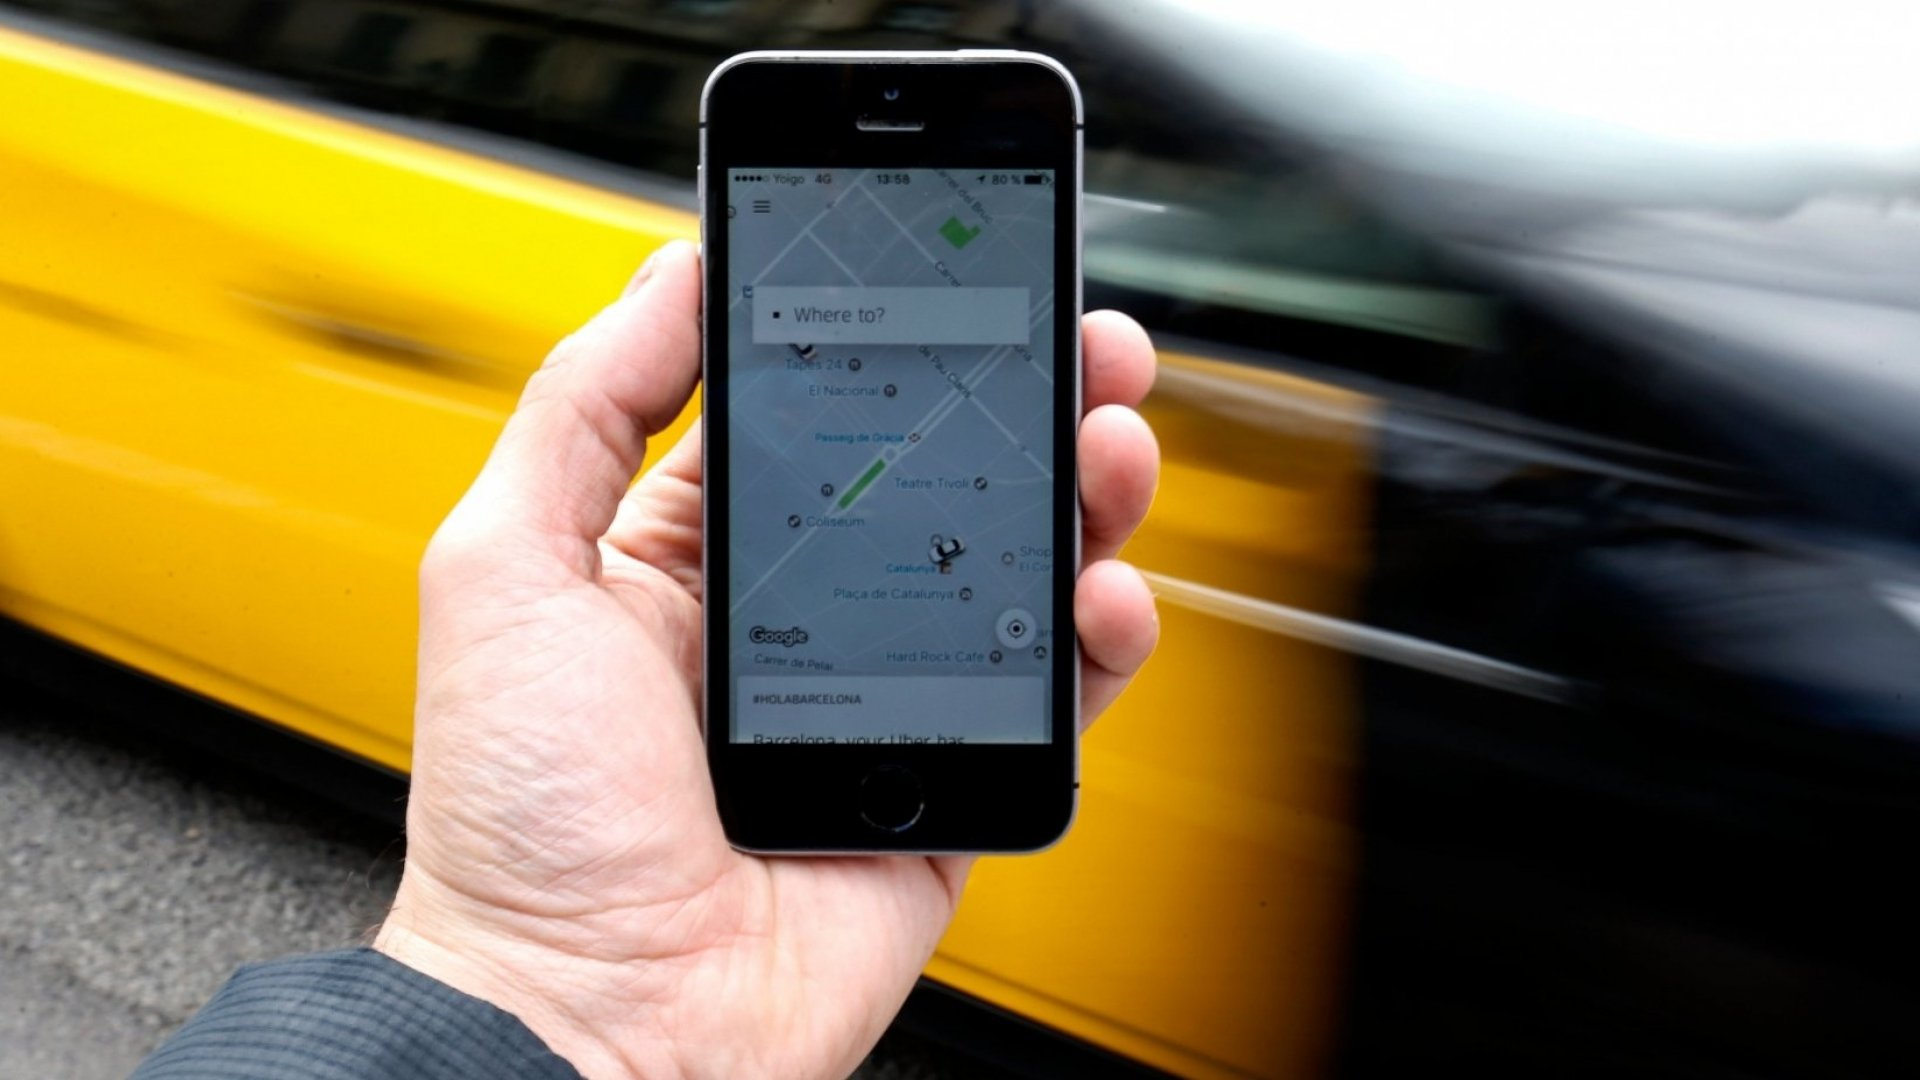 Successful ridesharing apps needs to take care of riders and drivers